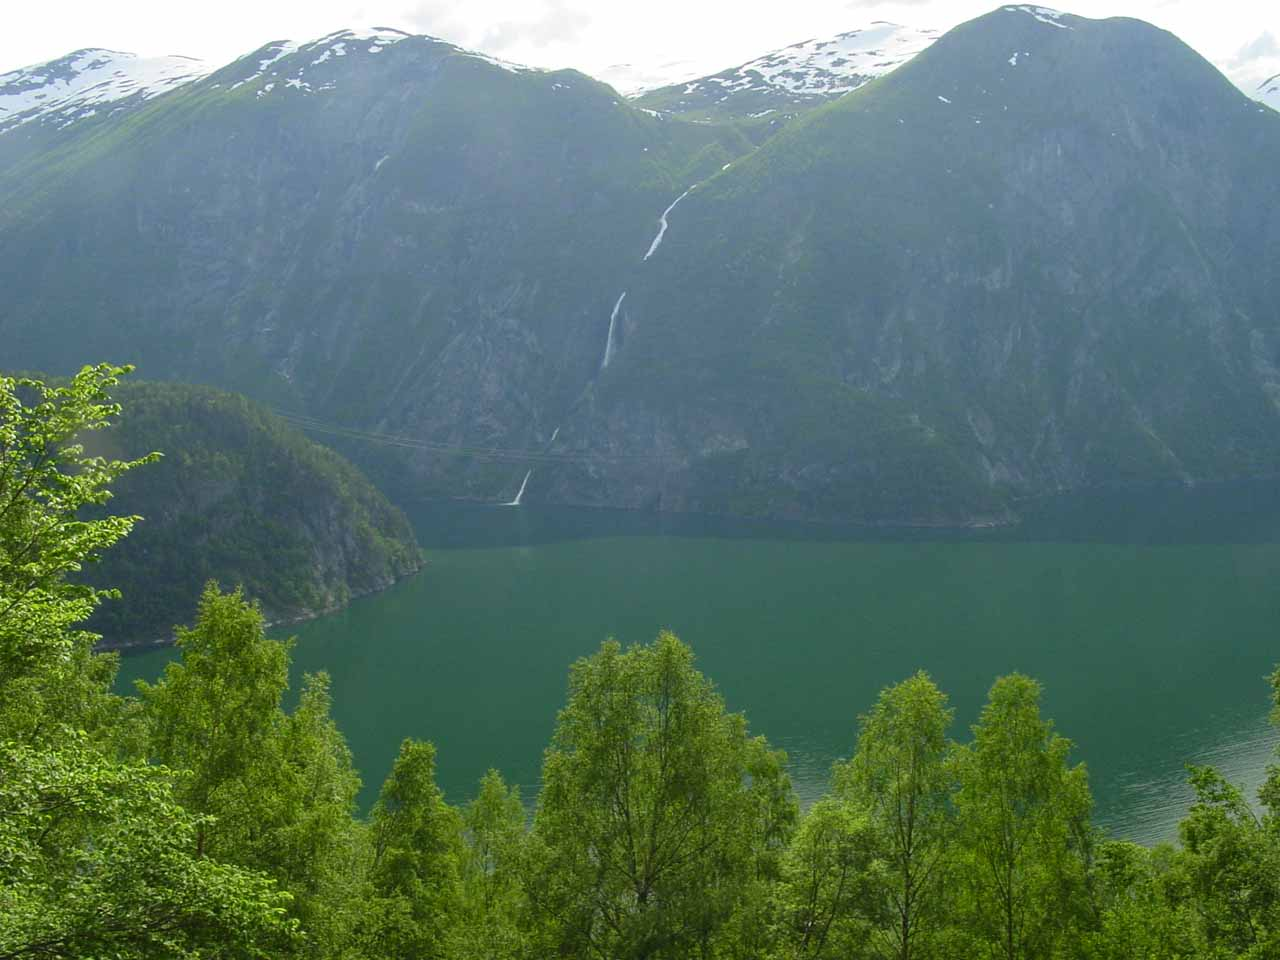 Looking across Tafjorden towards what I think is 'Slufsafossen'. This was seen from high up the trail to Muldalsfossen